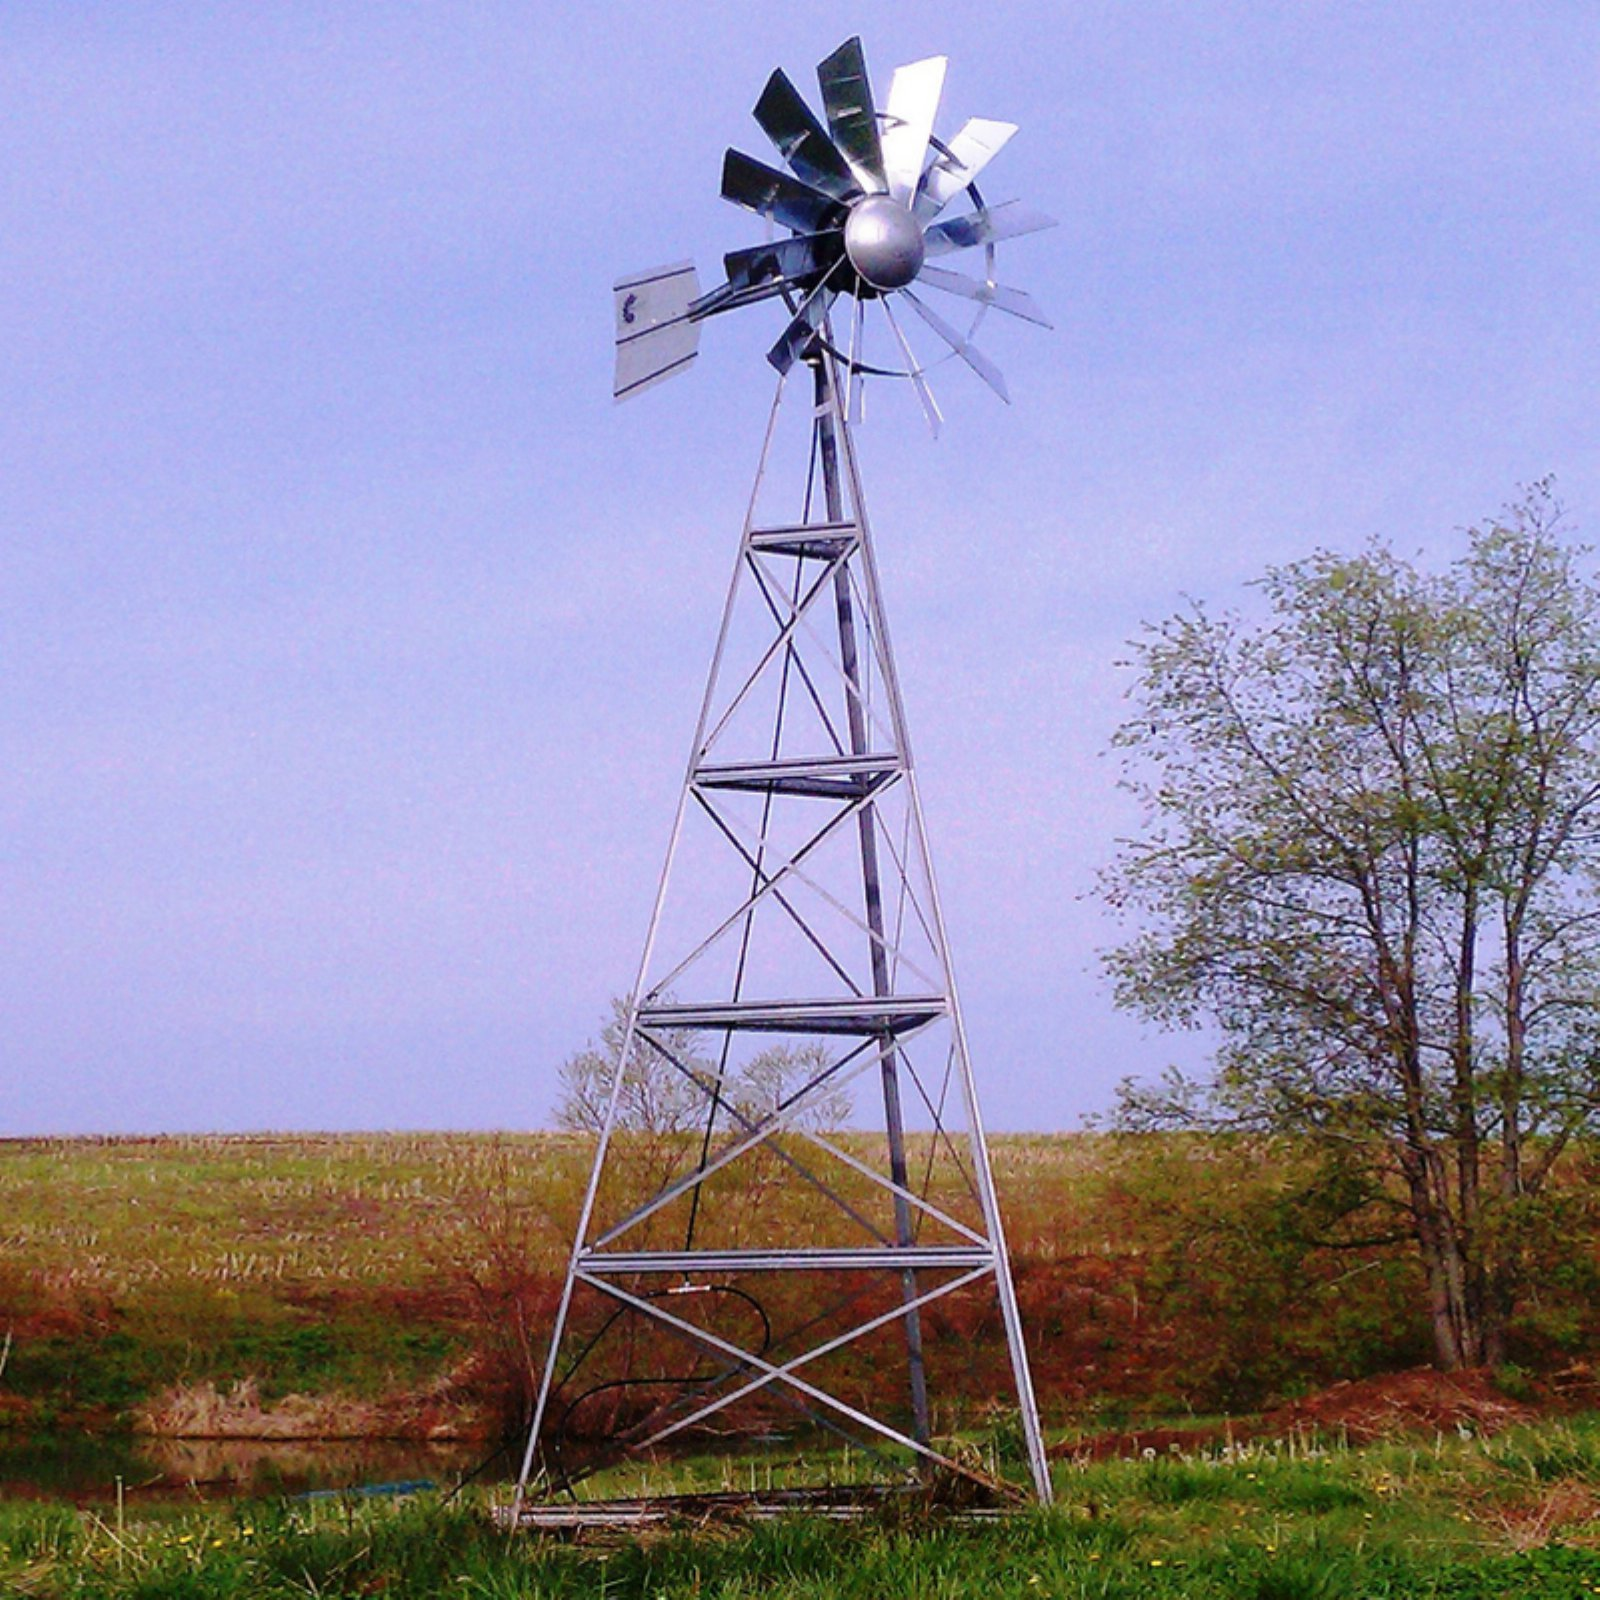 Deluxe 20 ft. 3 Legged Underwater Aeration Windmill System by Windmills